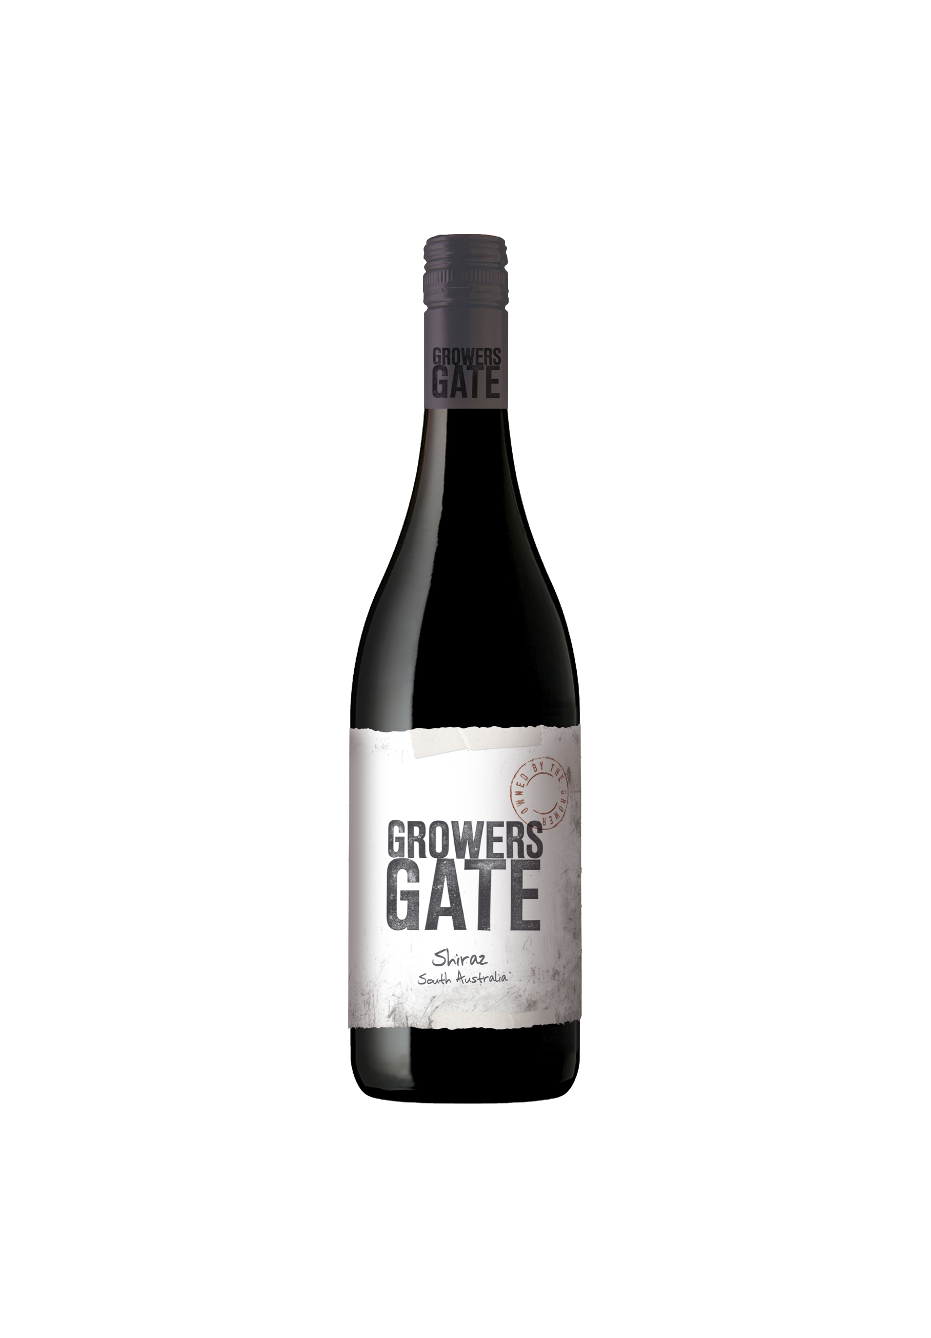 Growers Gate 'South Australian' Shiraz 2014